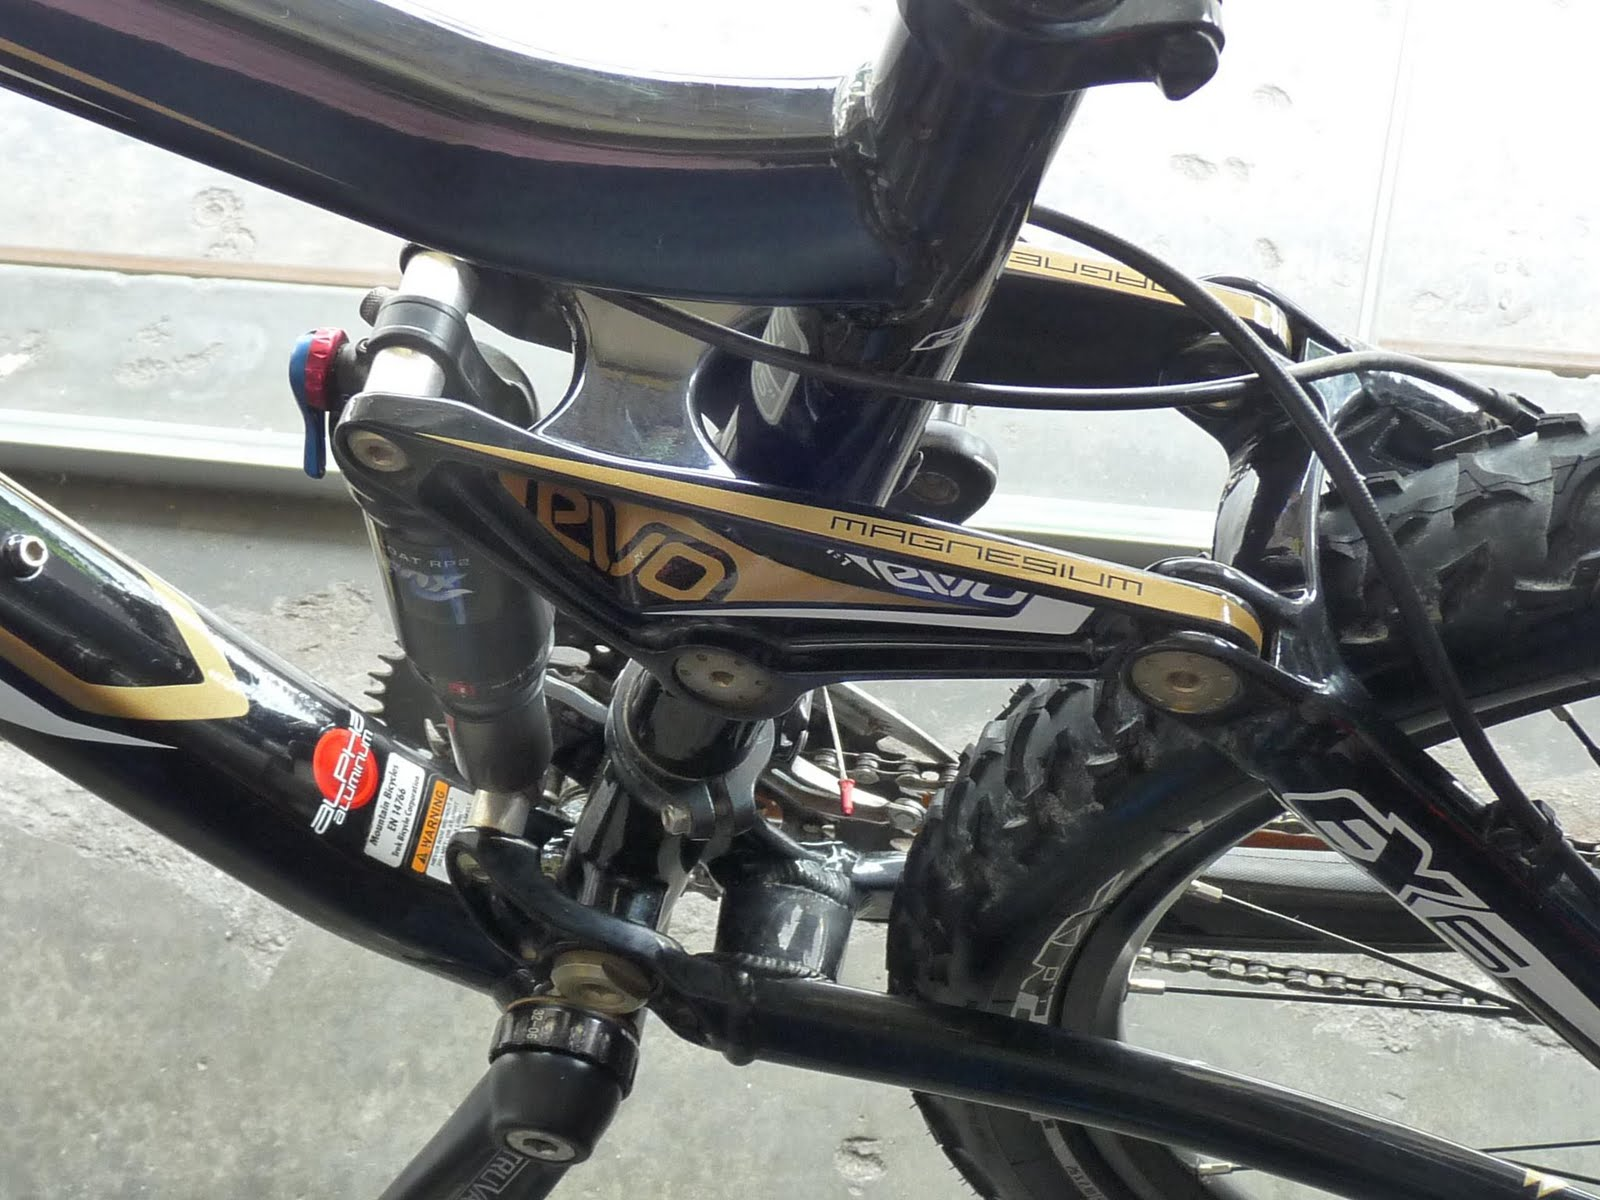 7b5e37399c0 As we are expecting Chua new Trek Fuel bicycle will be here anytime soon, I  am proud to bring you some close up shot on the Trek Fuel EX6.